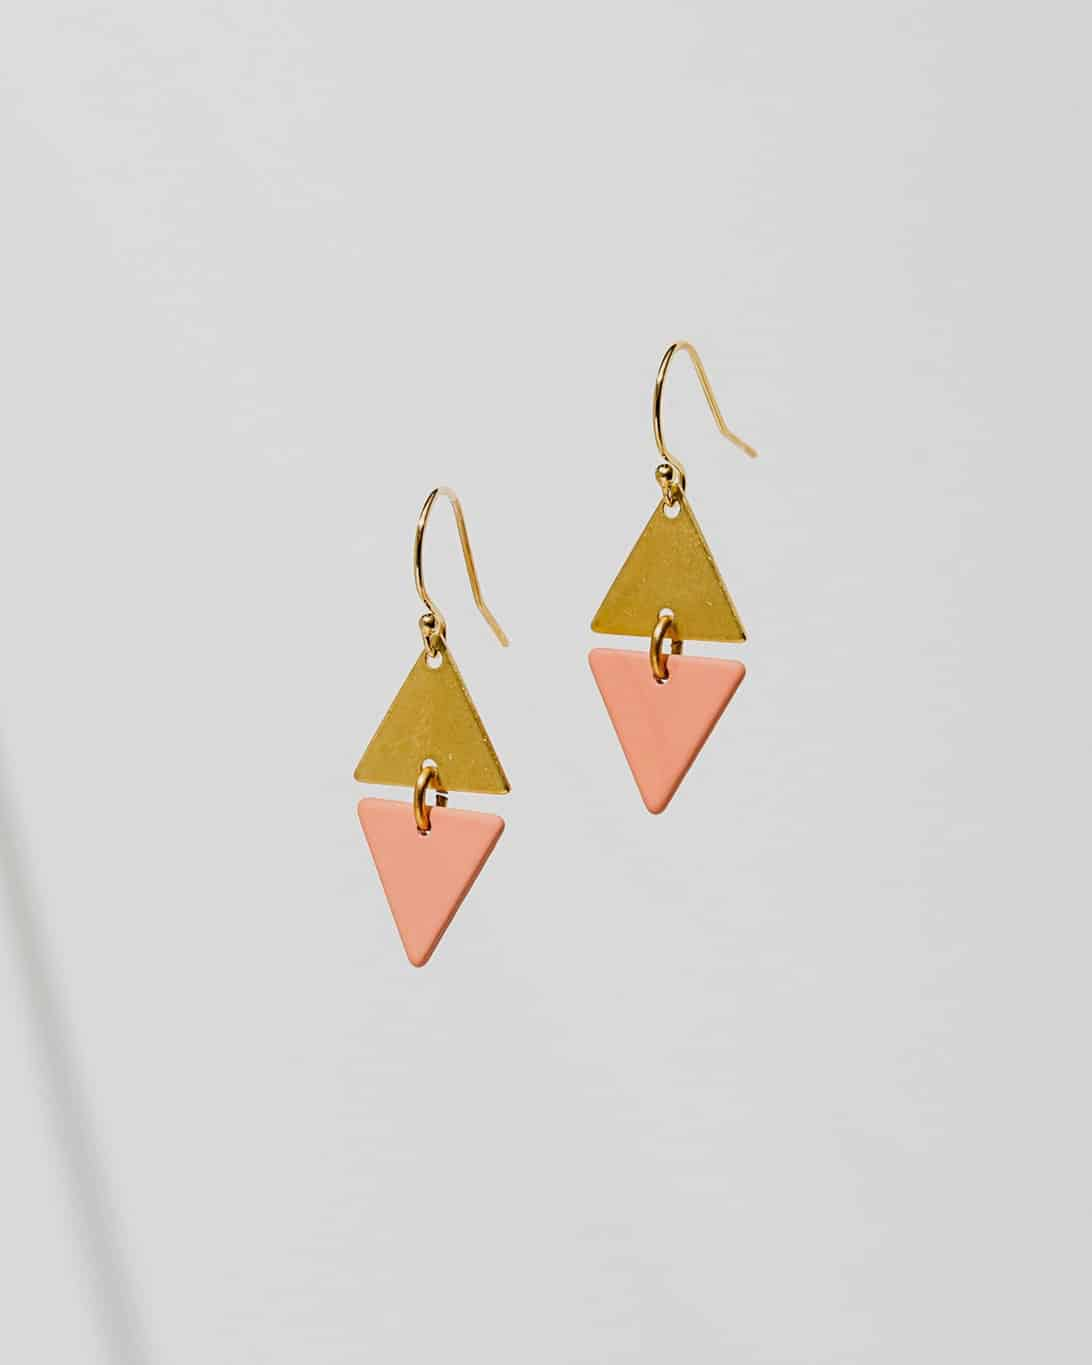 gold and pink diamond-shaped earrings